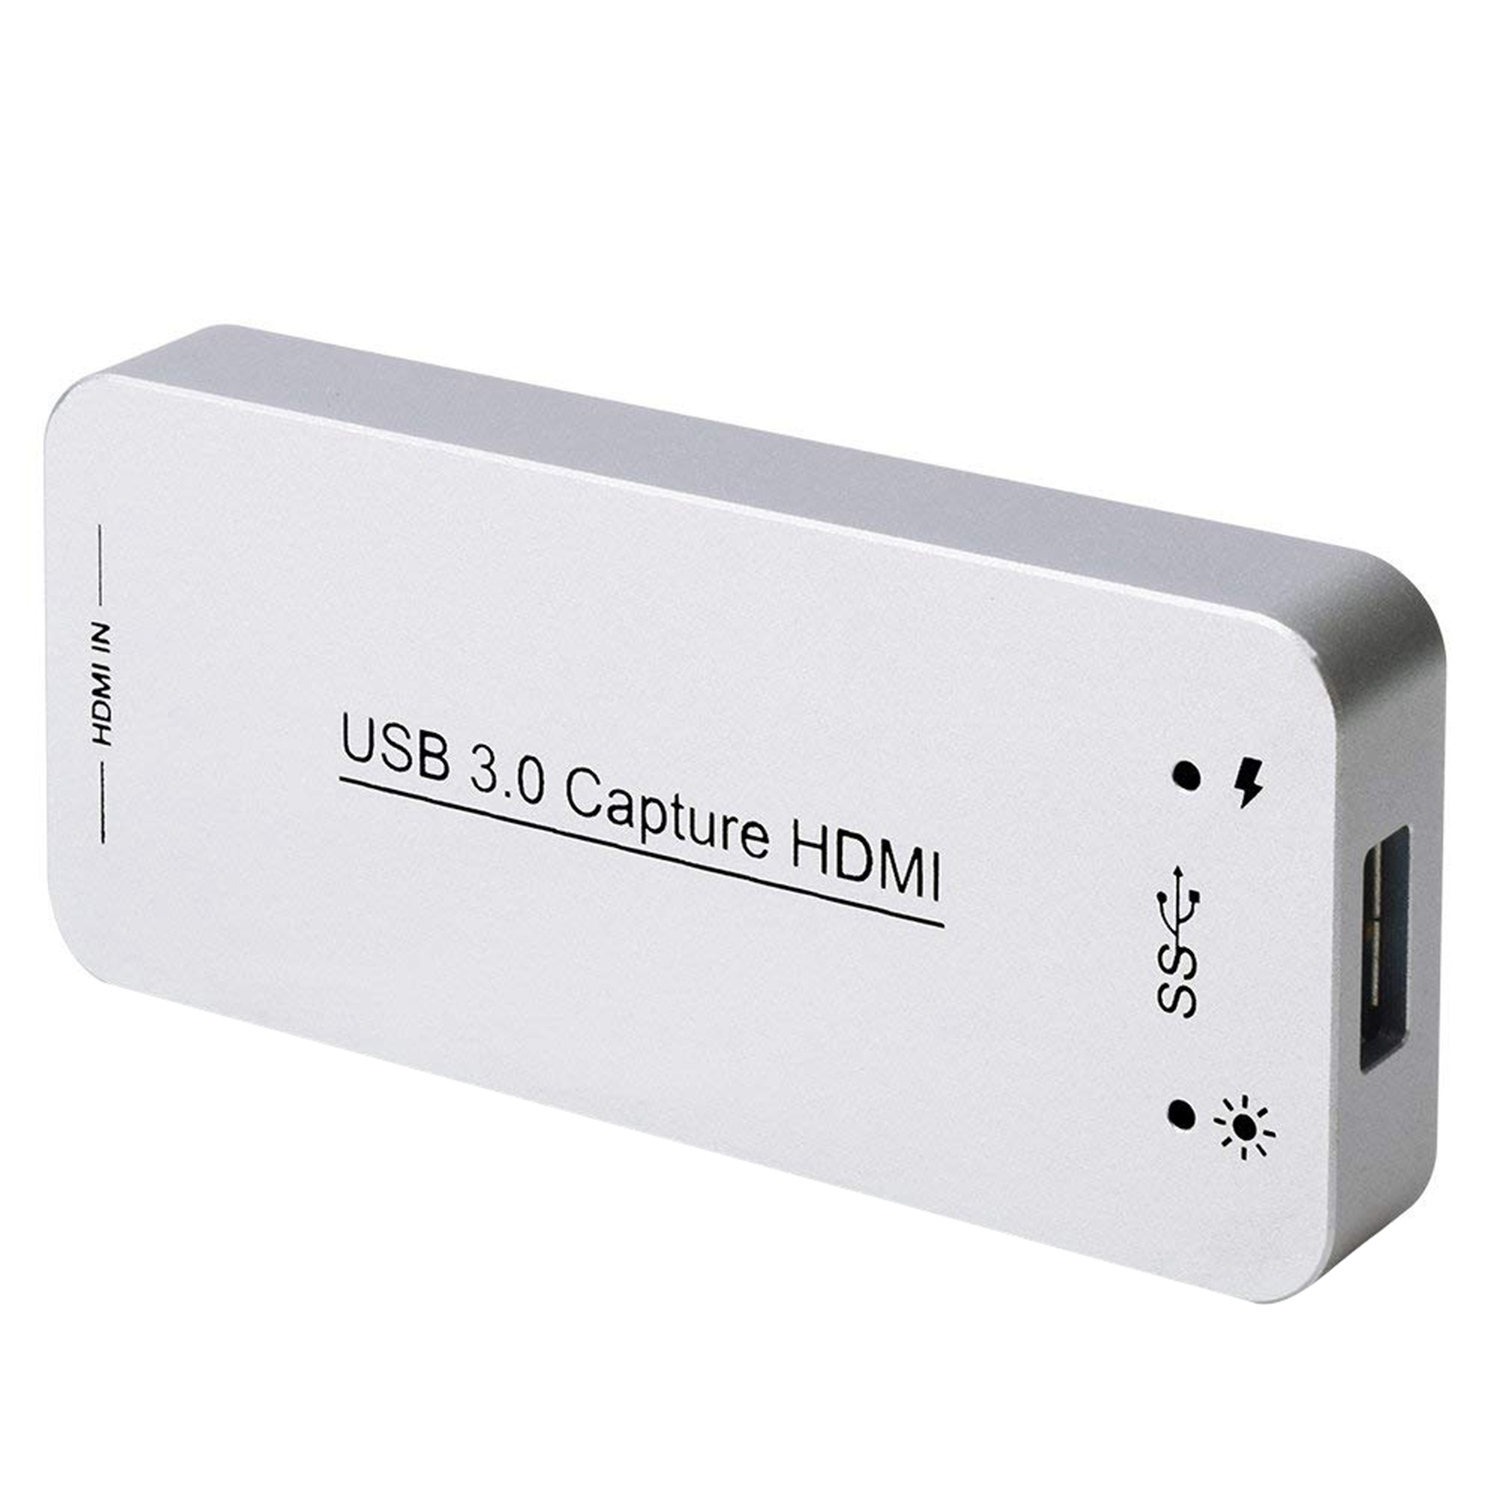 Hdmi to usb 3.0 converter dongle